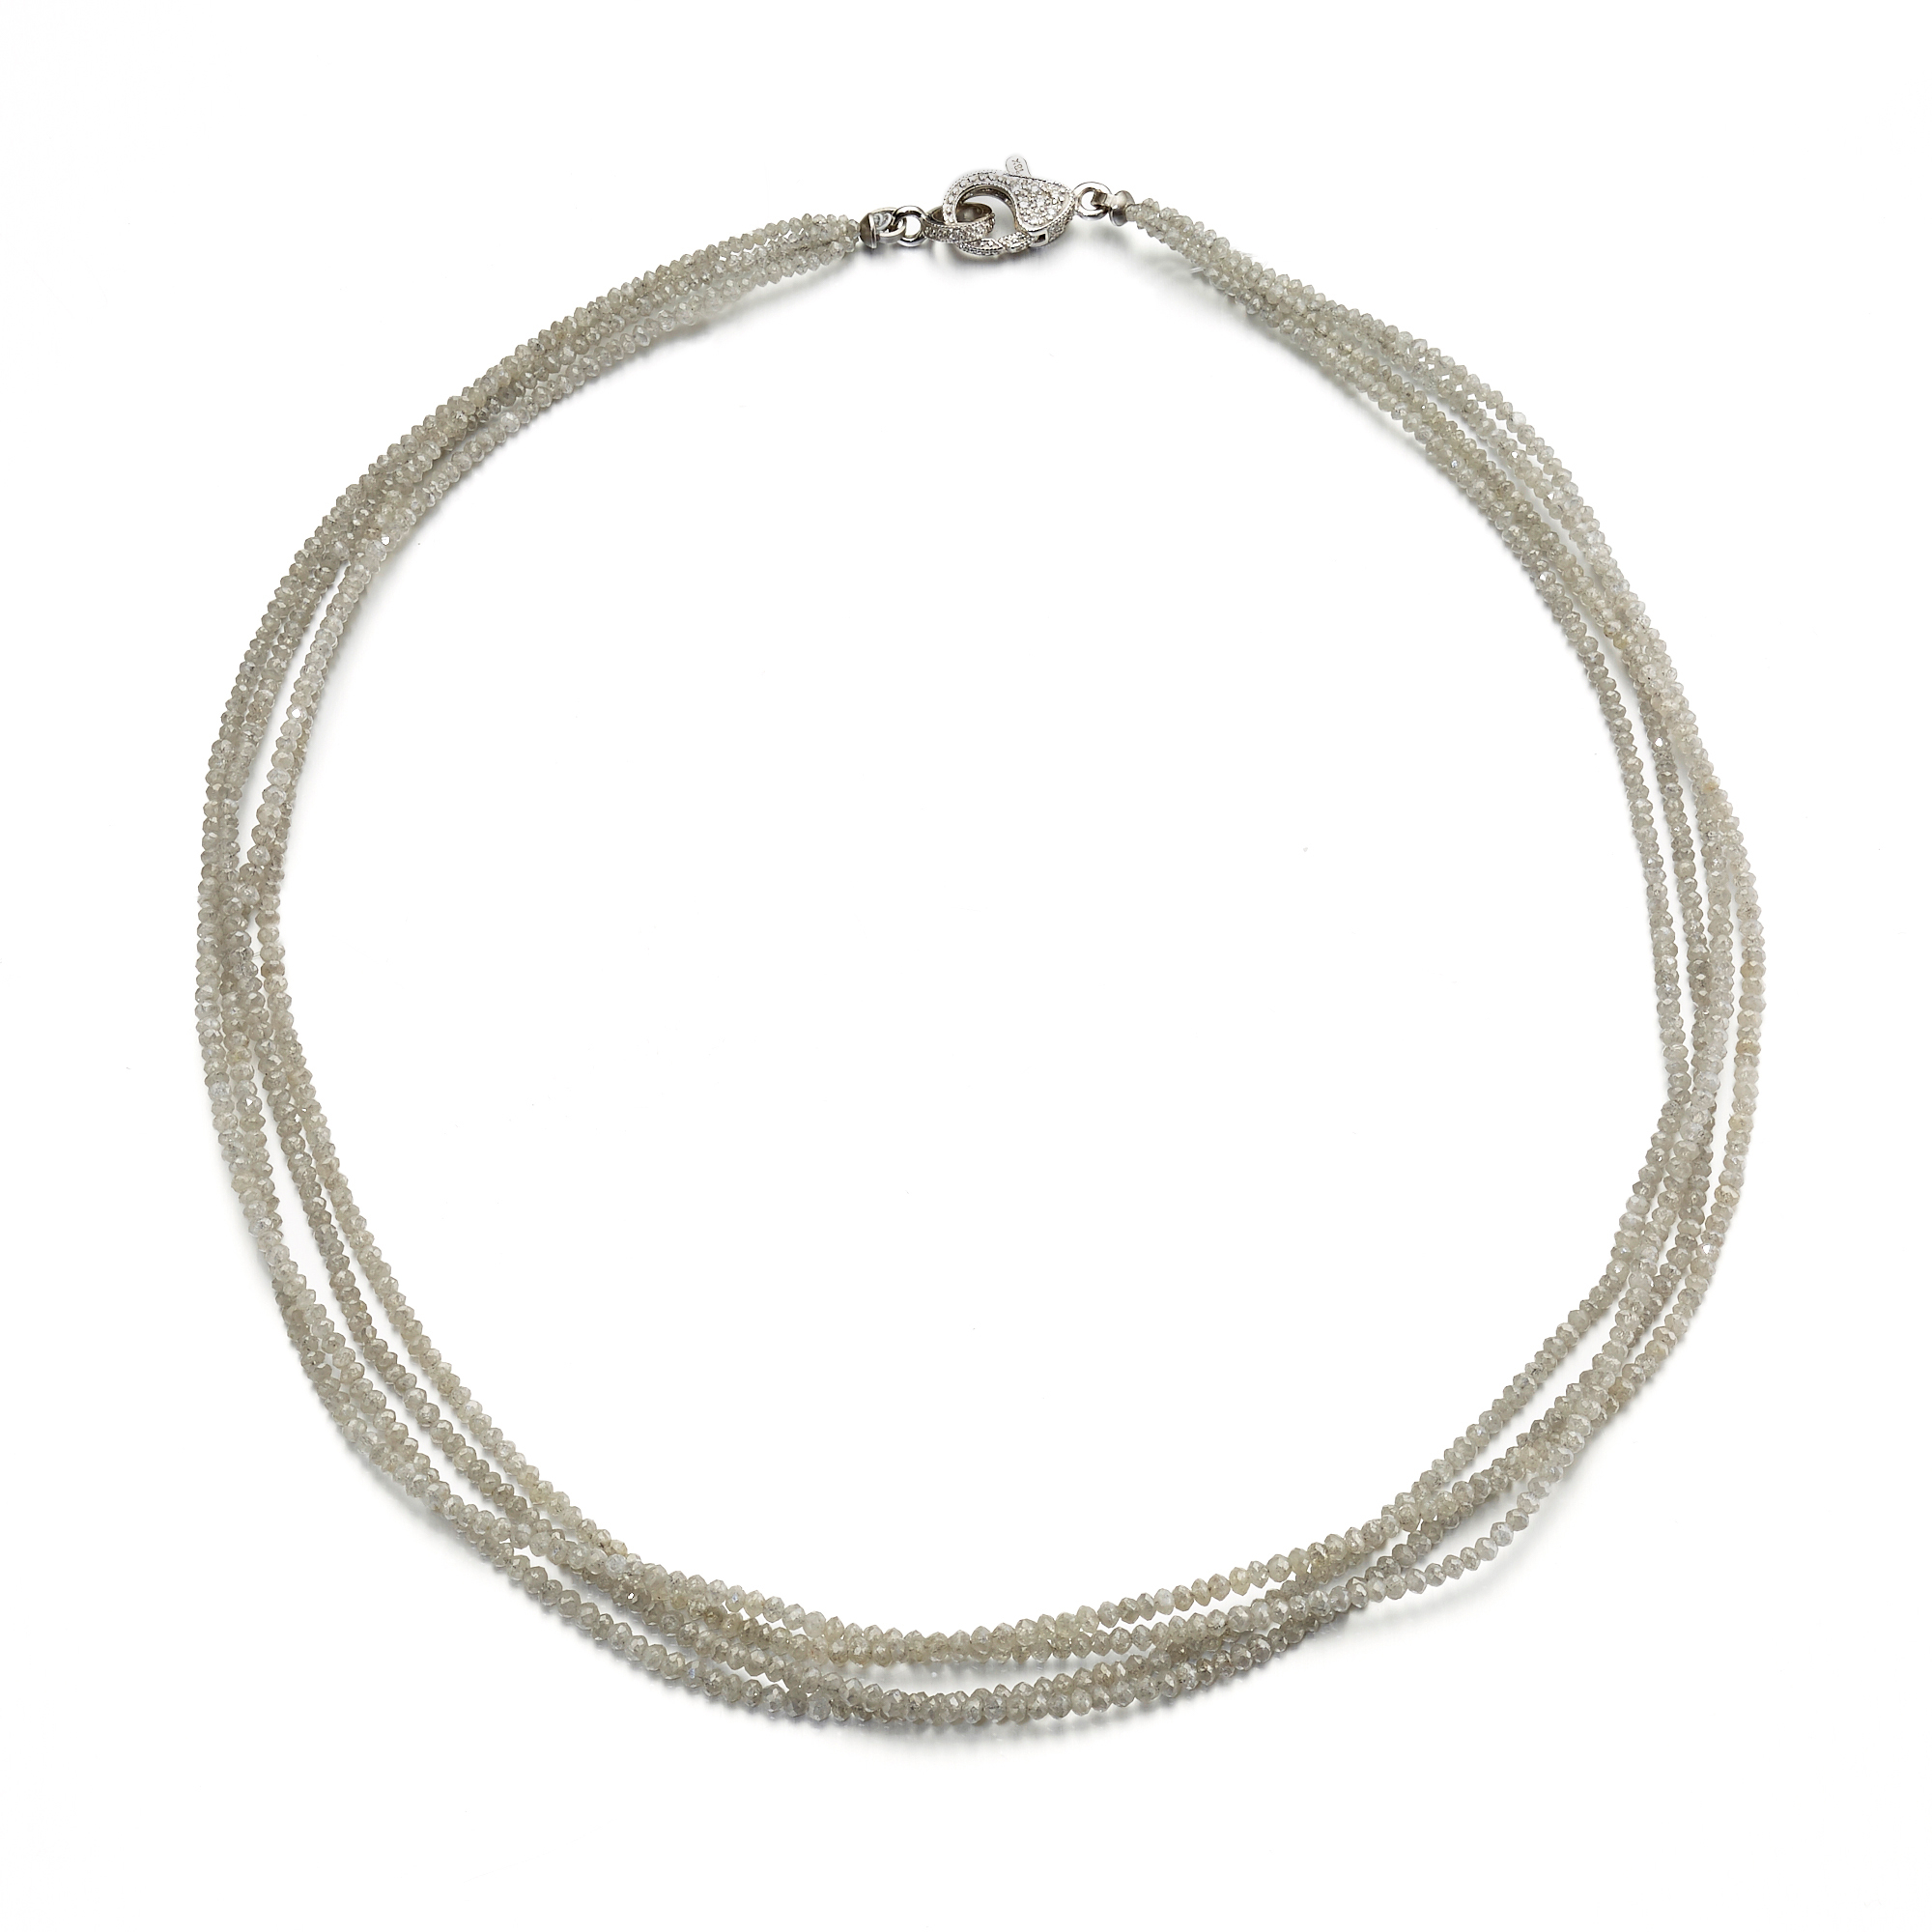 Gump's Four-Strand Faceted Gray Diamond Necklace